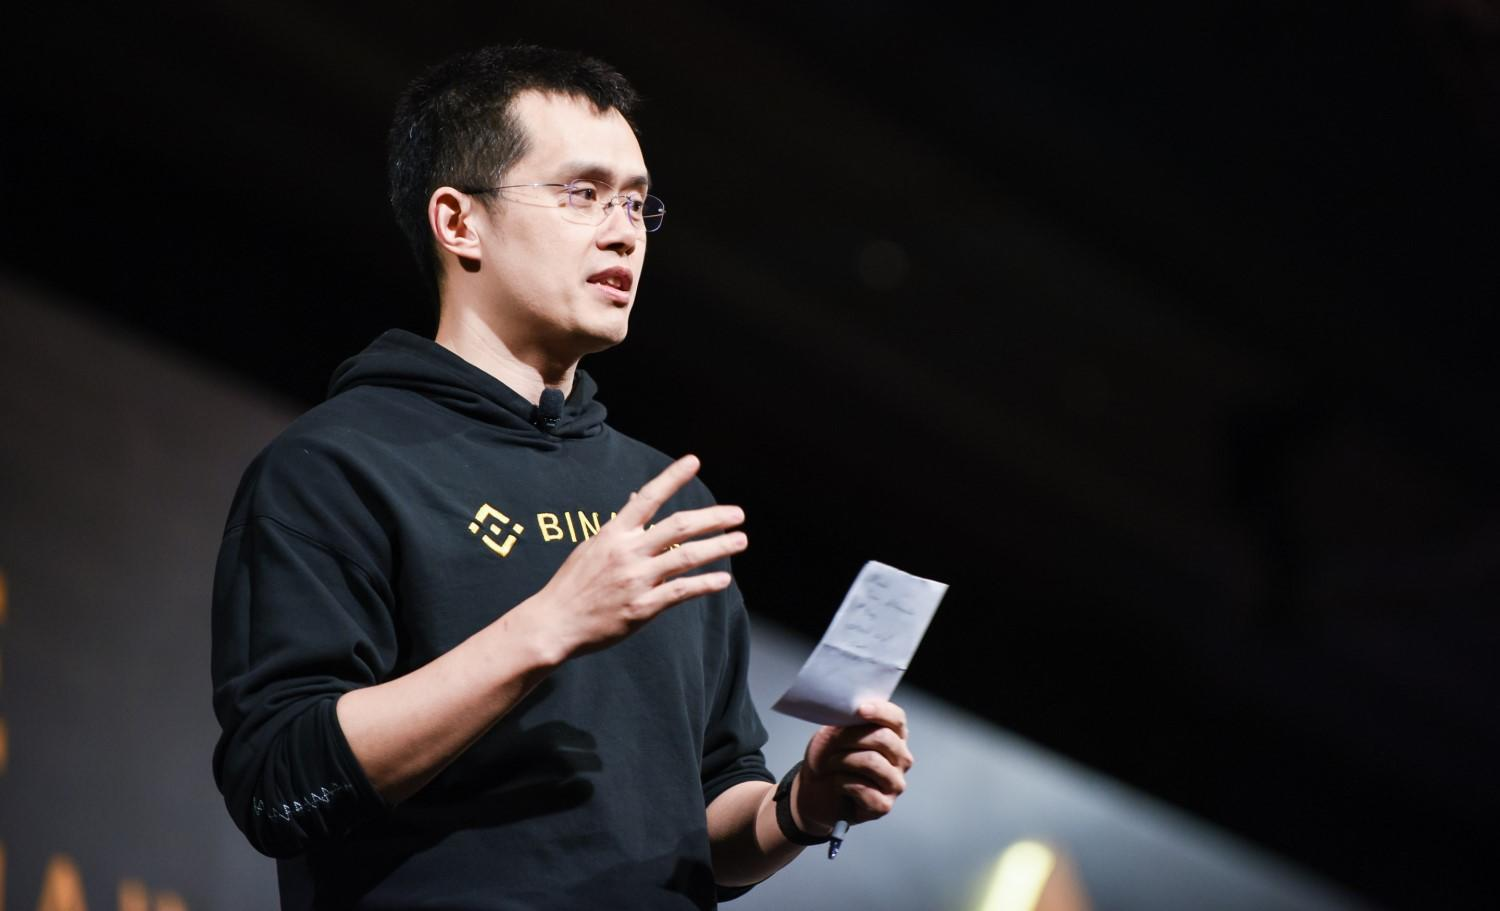 Binance Launches Platform '2.0' as Margin Trading Goes Live